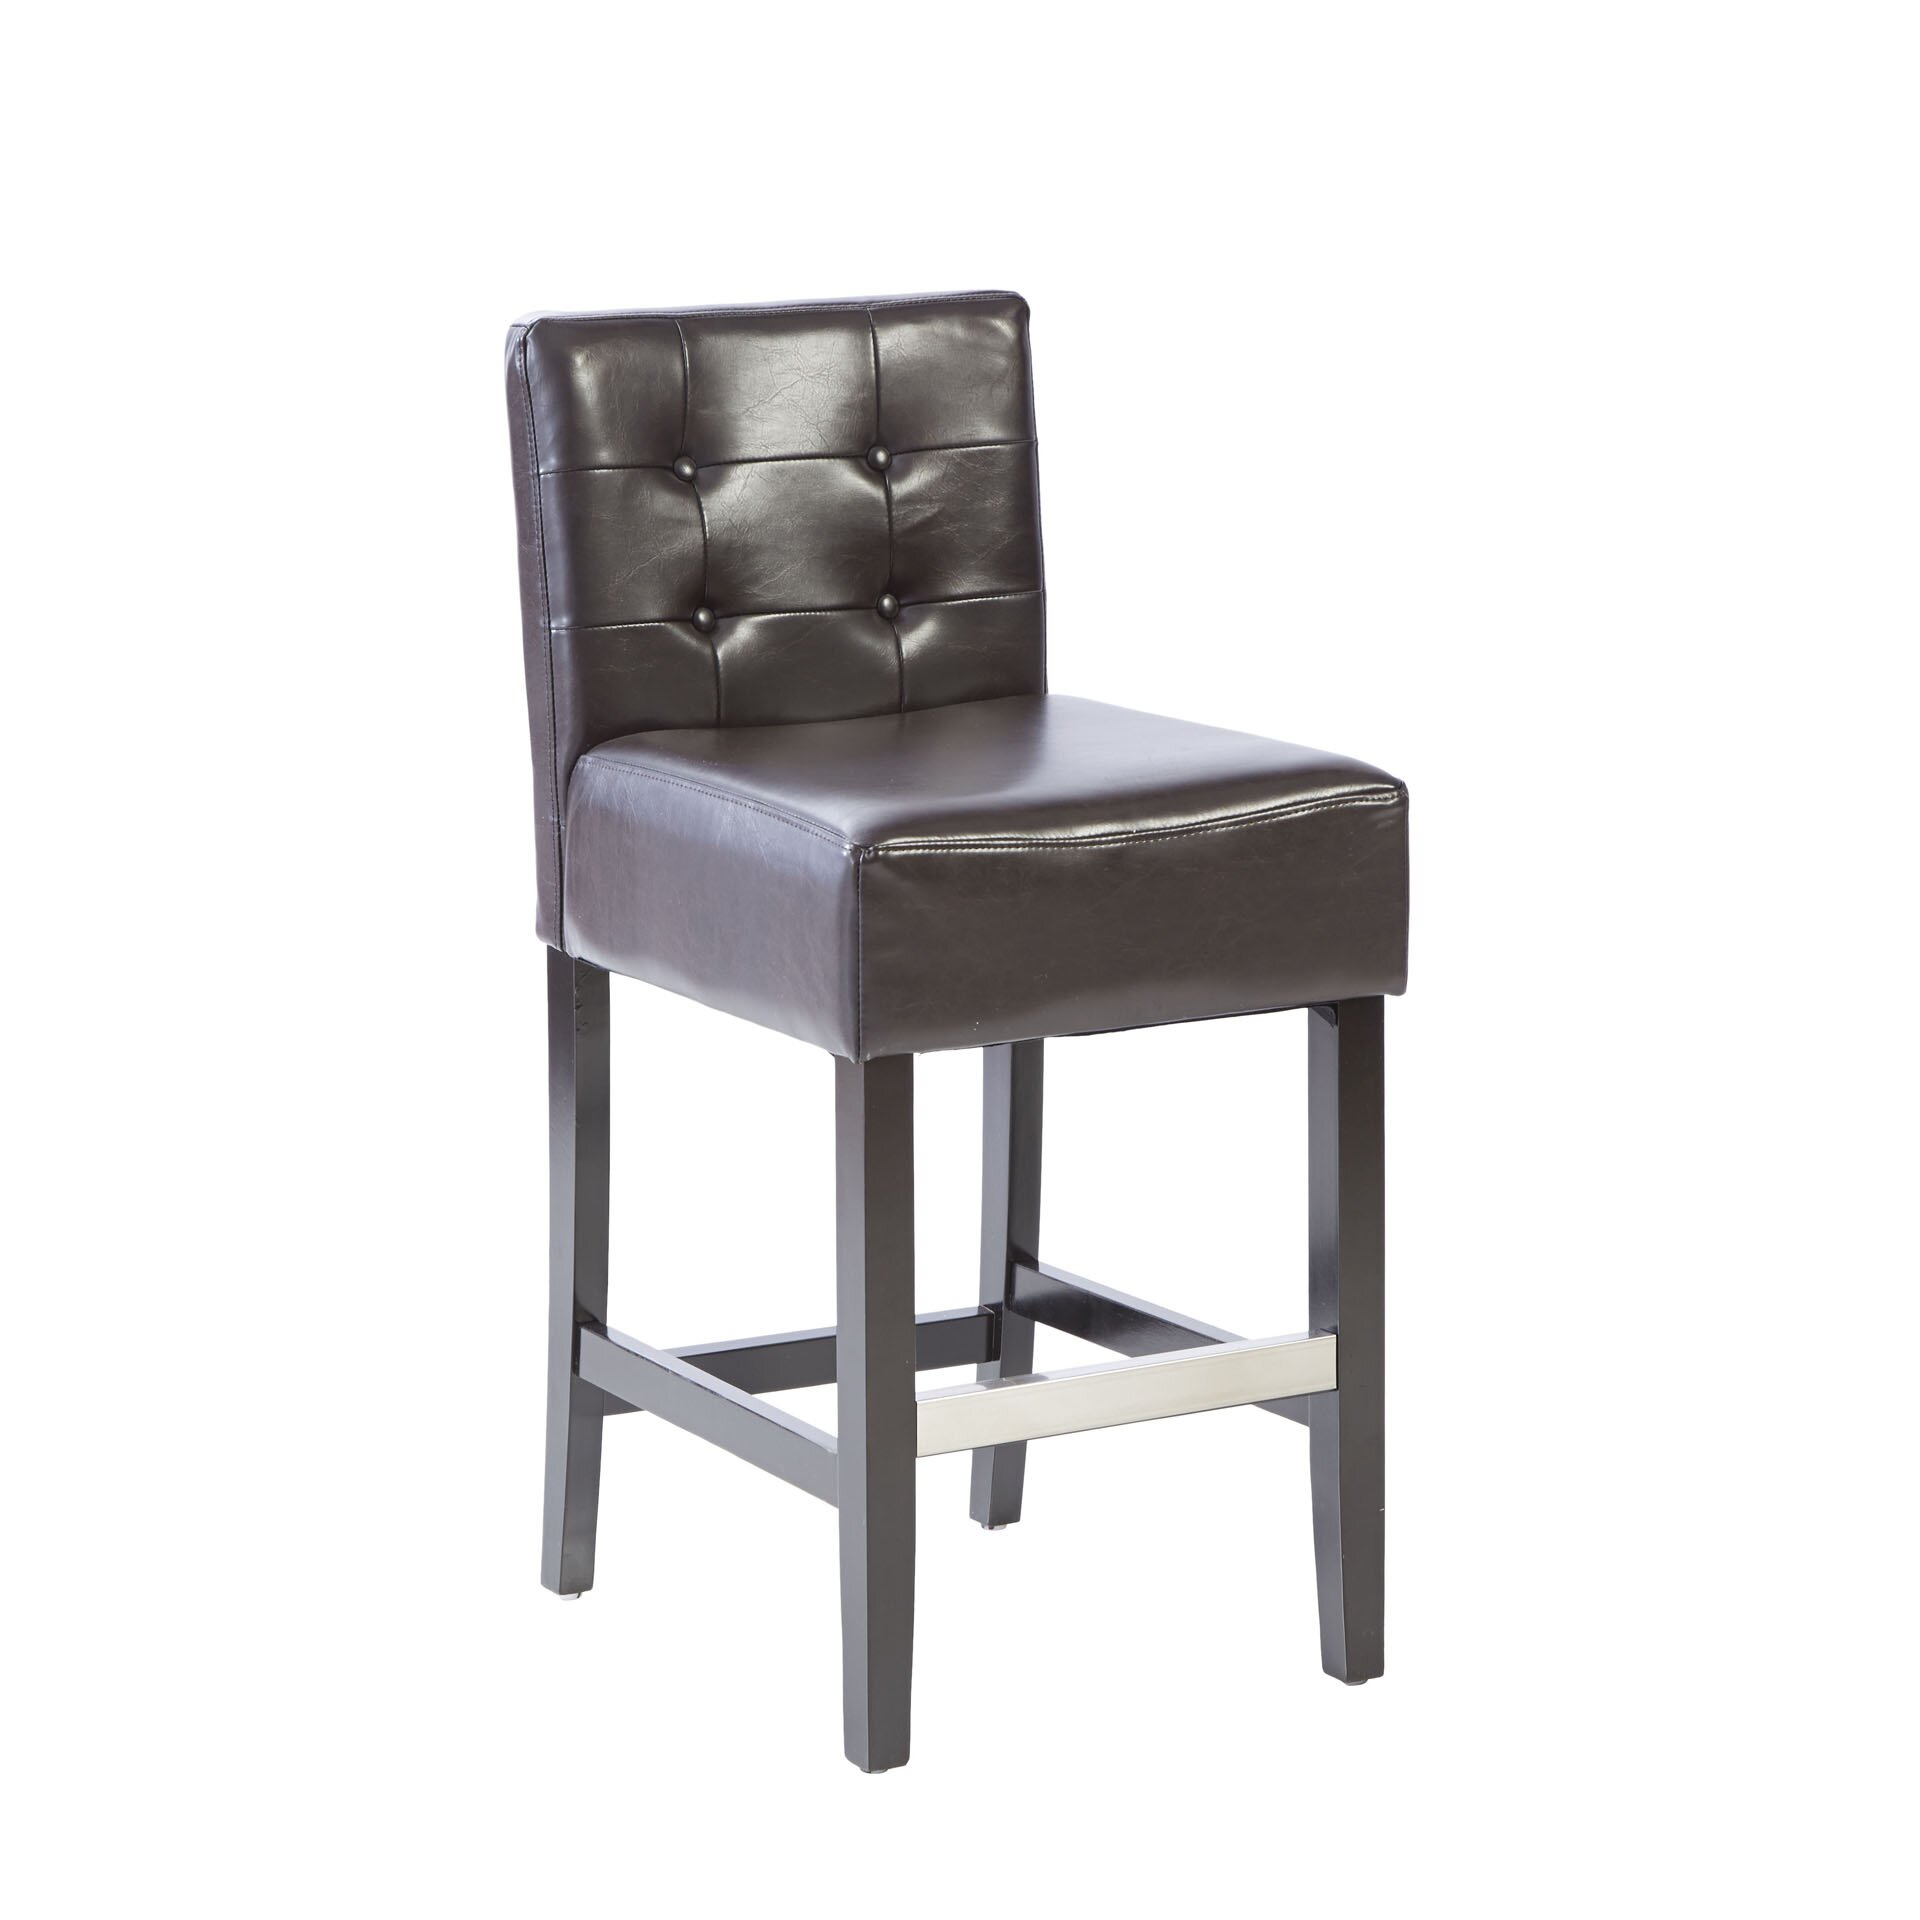 Three Posts 255quot Bar Stool amp Reviews Wayfair : Tufted 255 Bar Stool with Cushion THRE2152 from www.wayfair.com size 1920 x 1920 jpeg 108kB